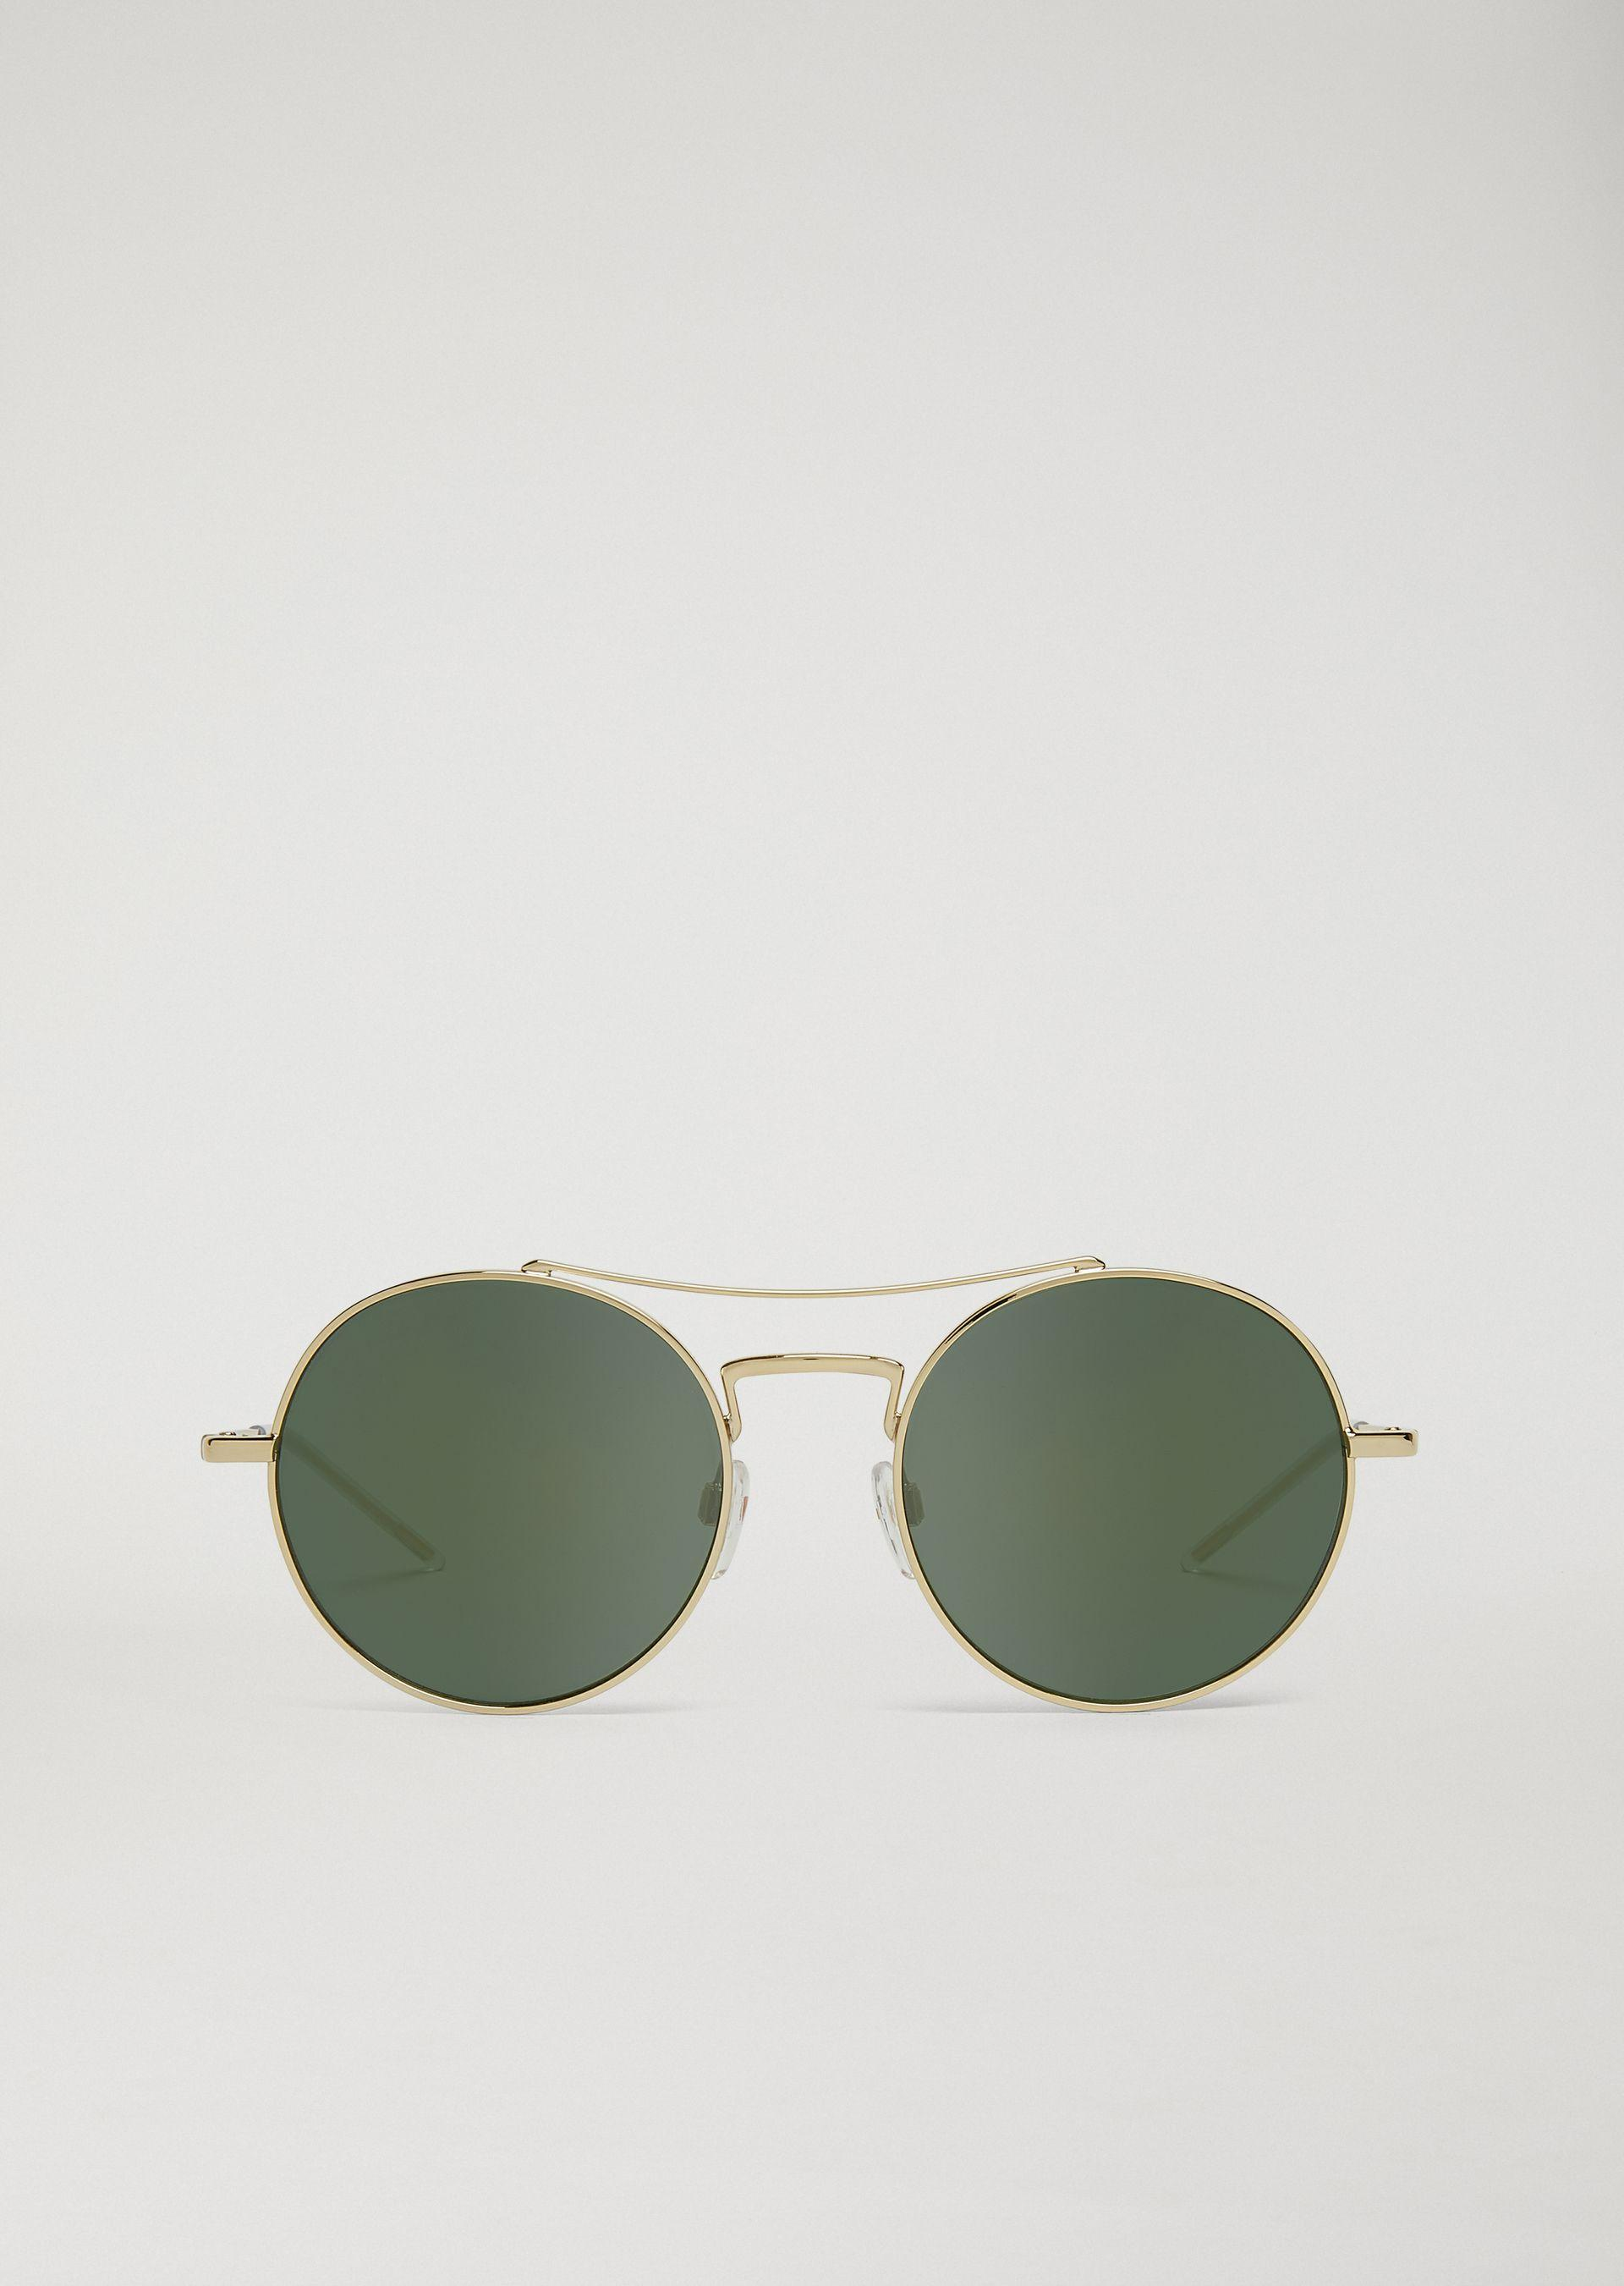 Emporio Armani Sun-glasses - Item 46572299 In Green